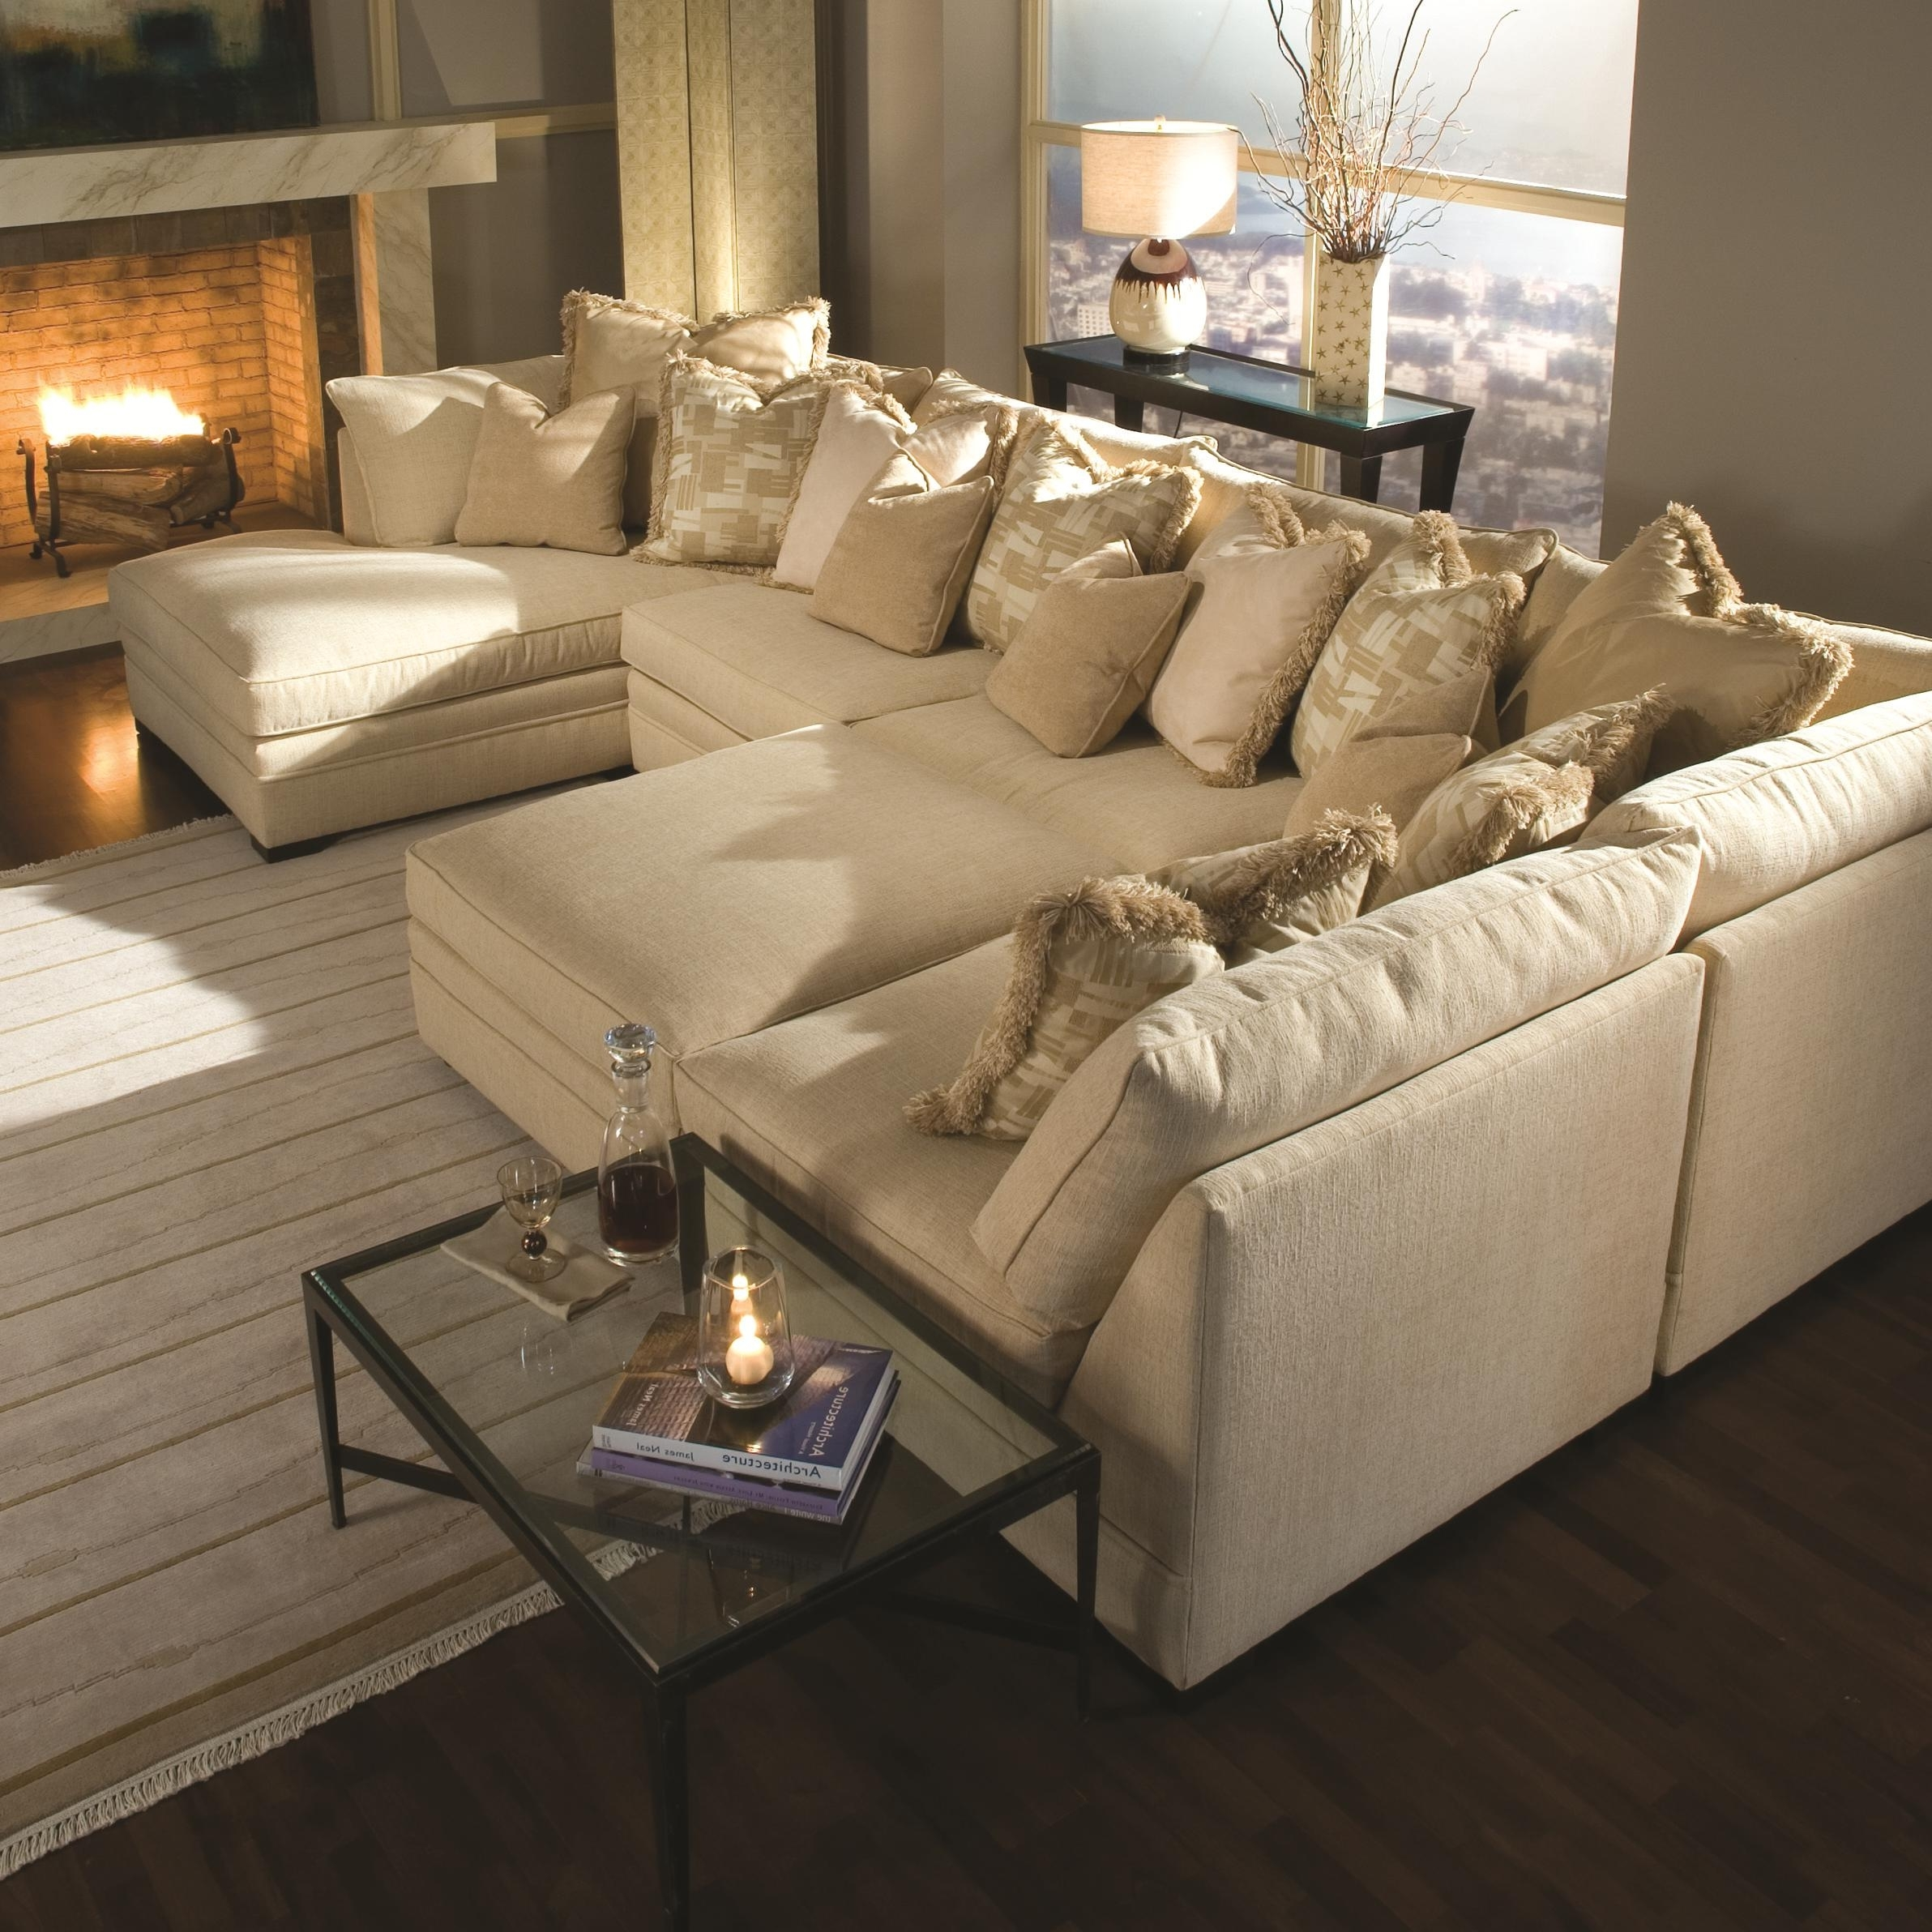 Sectional Sofas With Oversized Ottoman For Favorite Furniture: Interesting Living Room Interior Using Large Sectional (View 14 of 20)